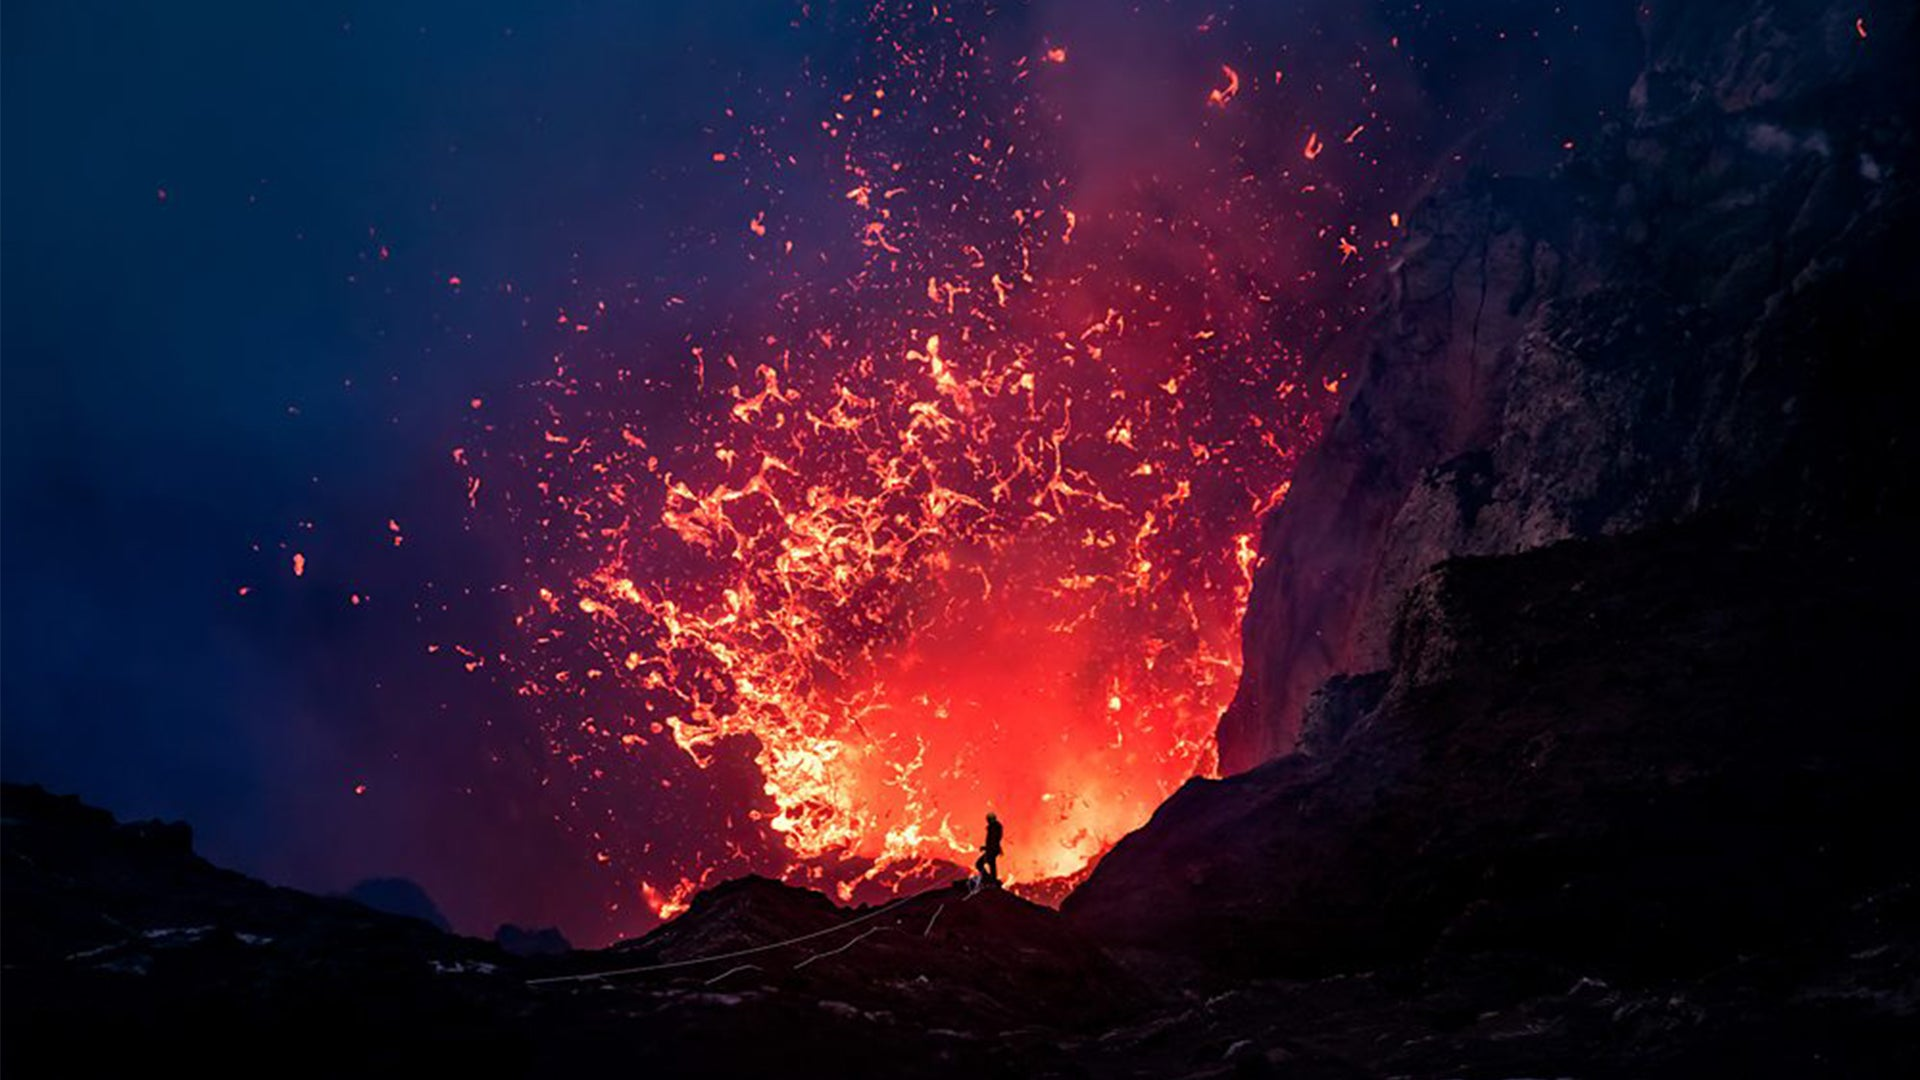 A photograph of a volcano spewing lava. A man's silhouette is seen against the lava's glow.